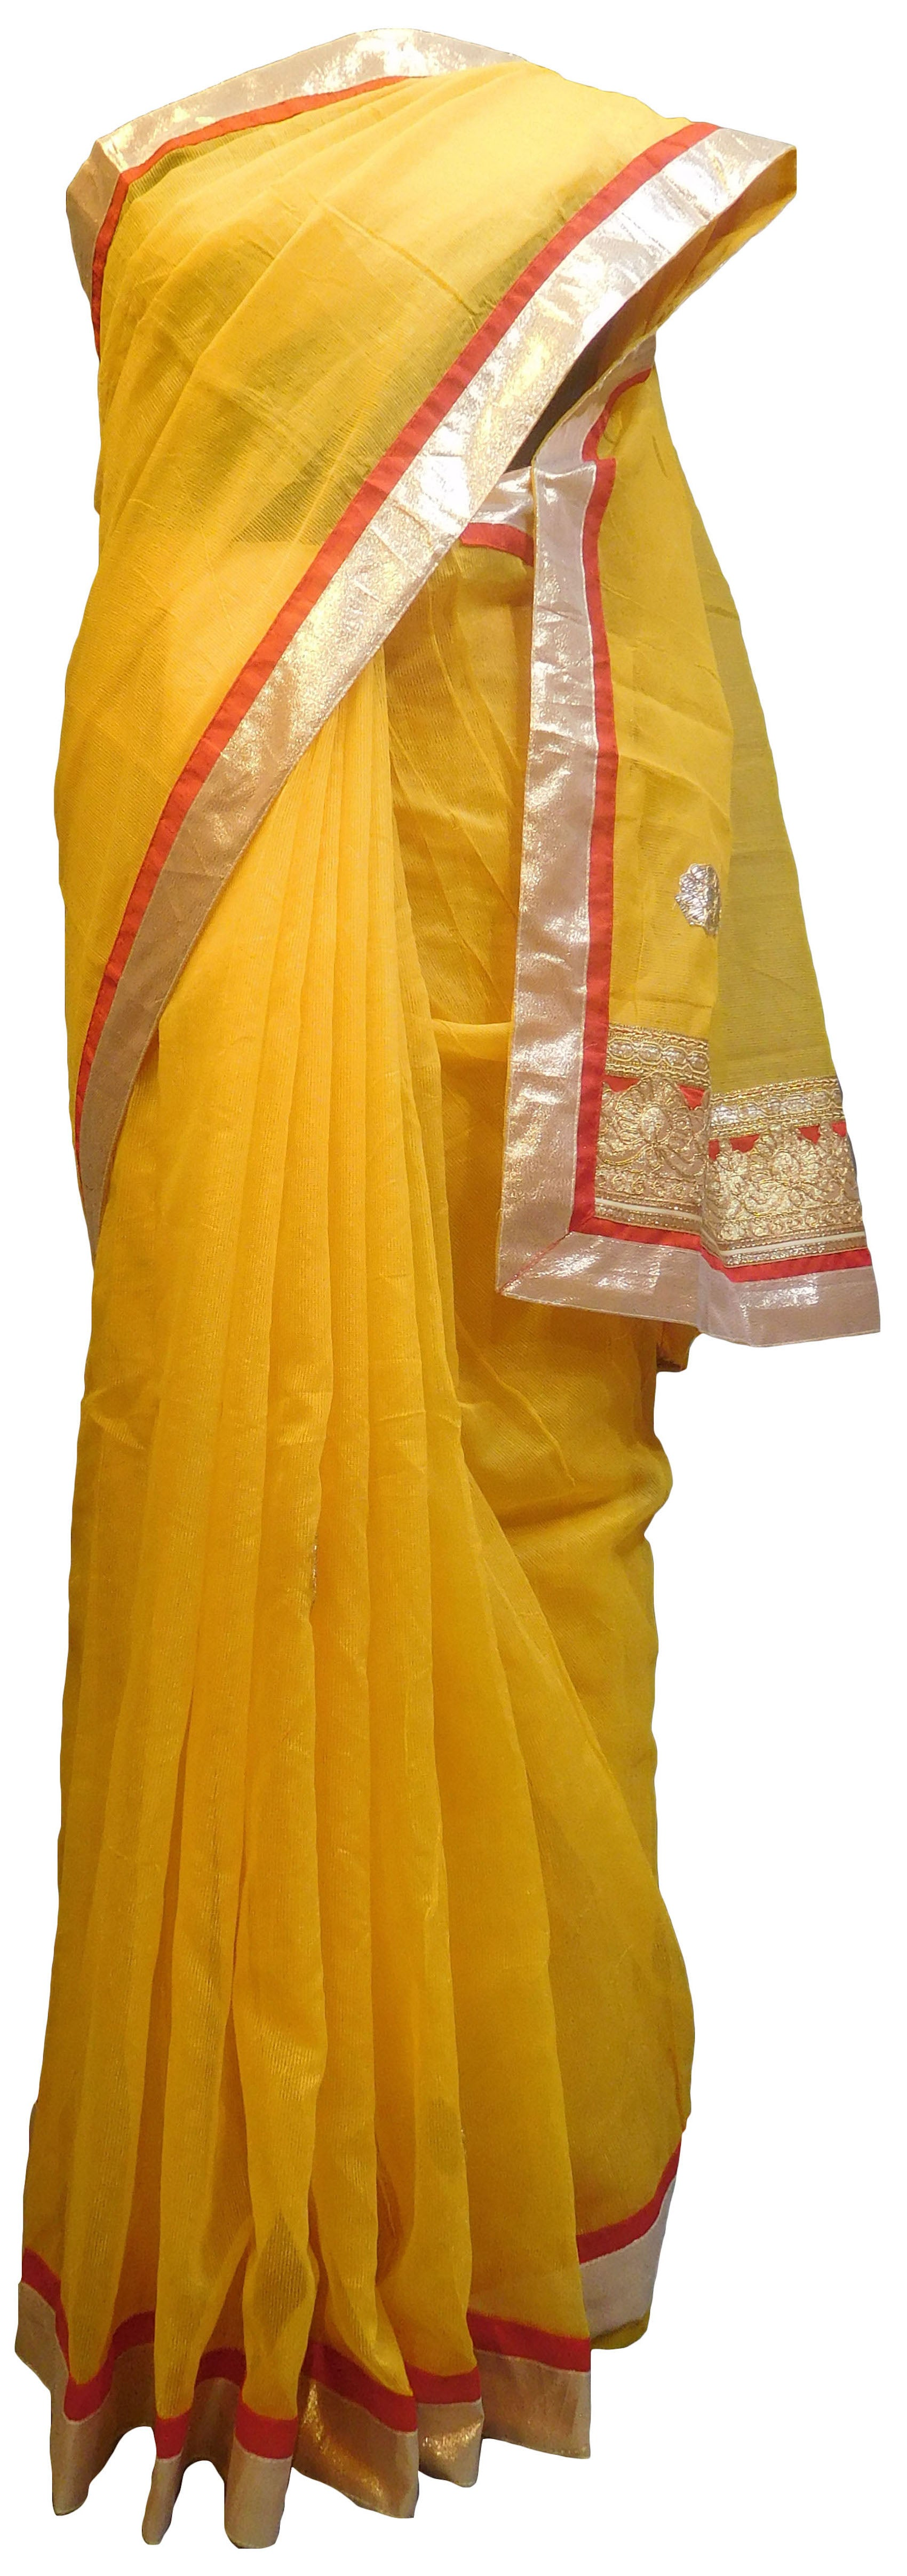 SMSAREE Yellow Designer Wedding Partywear Supernet (Cotton) Zari & Gota Hand Embroidery Work Bridal Saree Sari With Blouse Piece E833